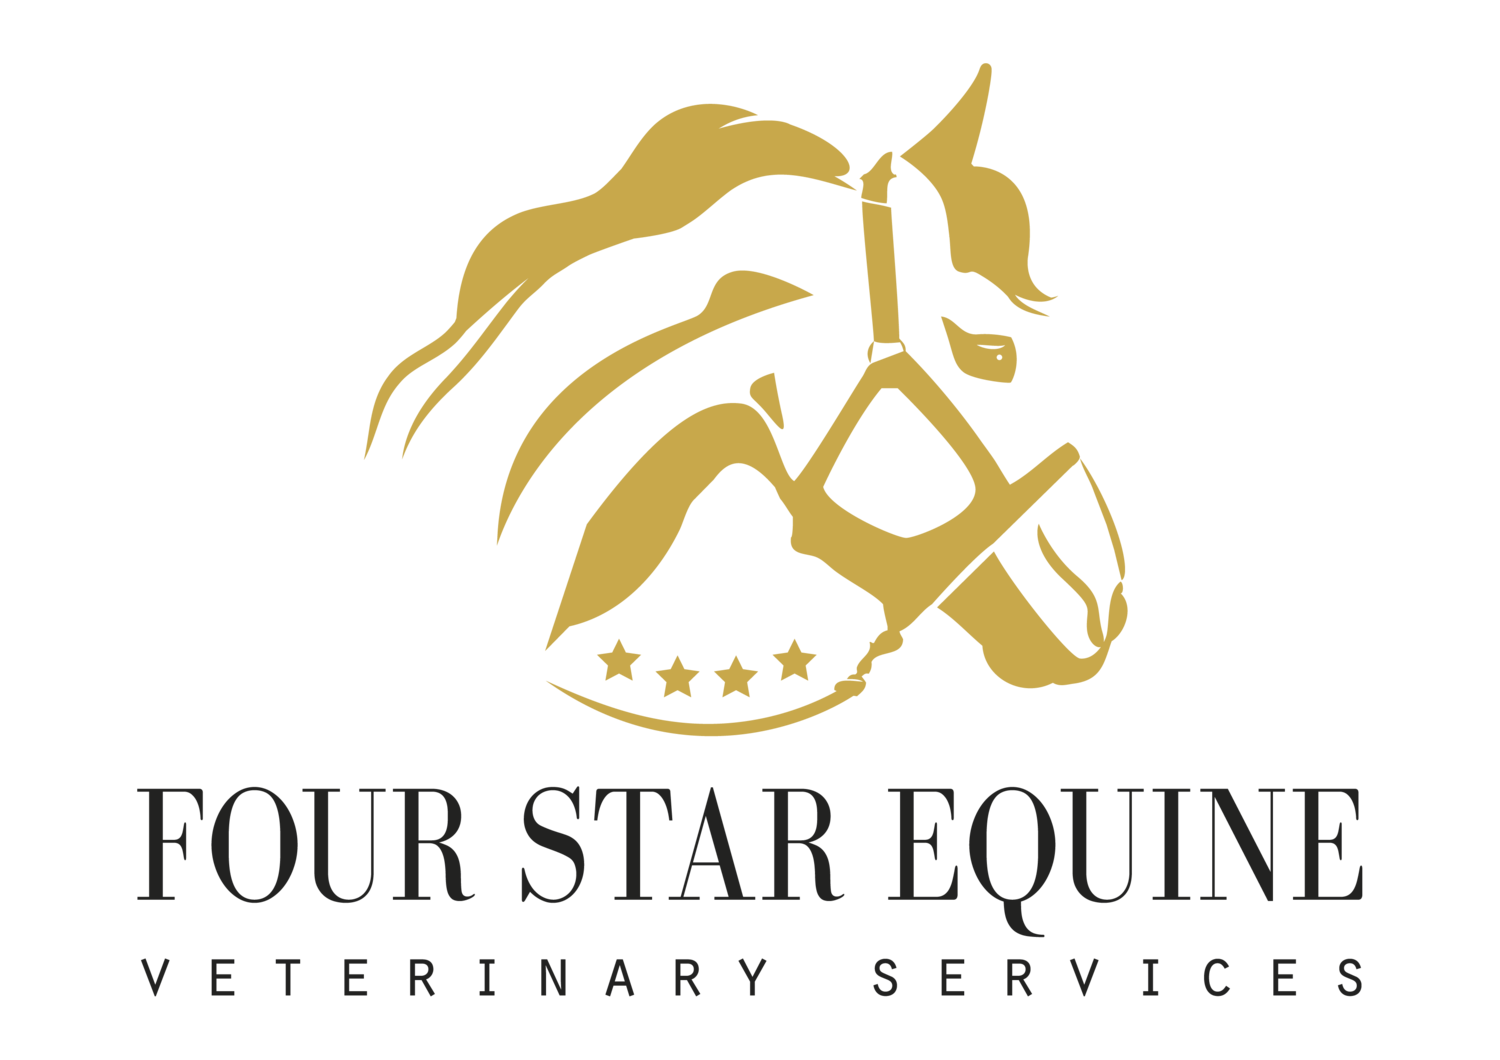 Four Star Equine PLLC